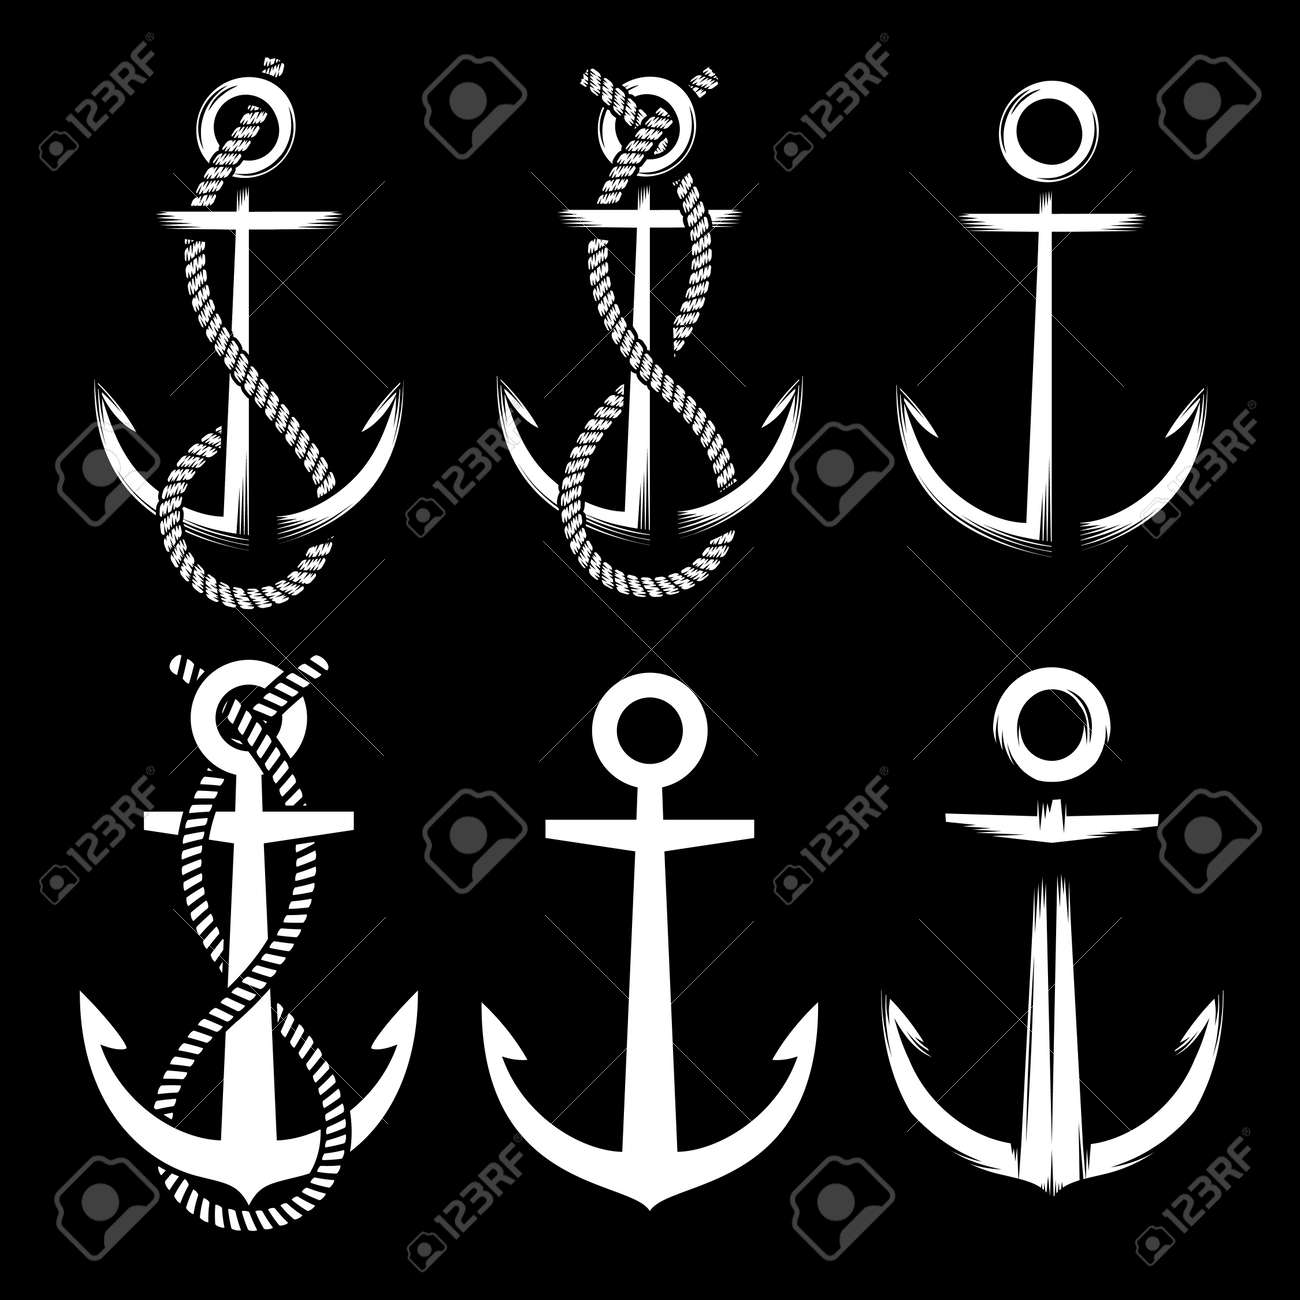 Set of different vintage white colored anchors on black background with and without rope. Stock Vector - 85126782